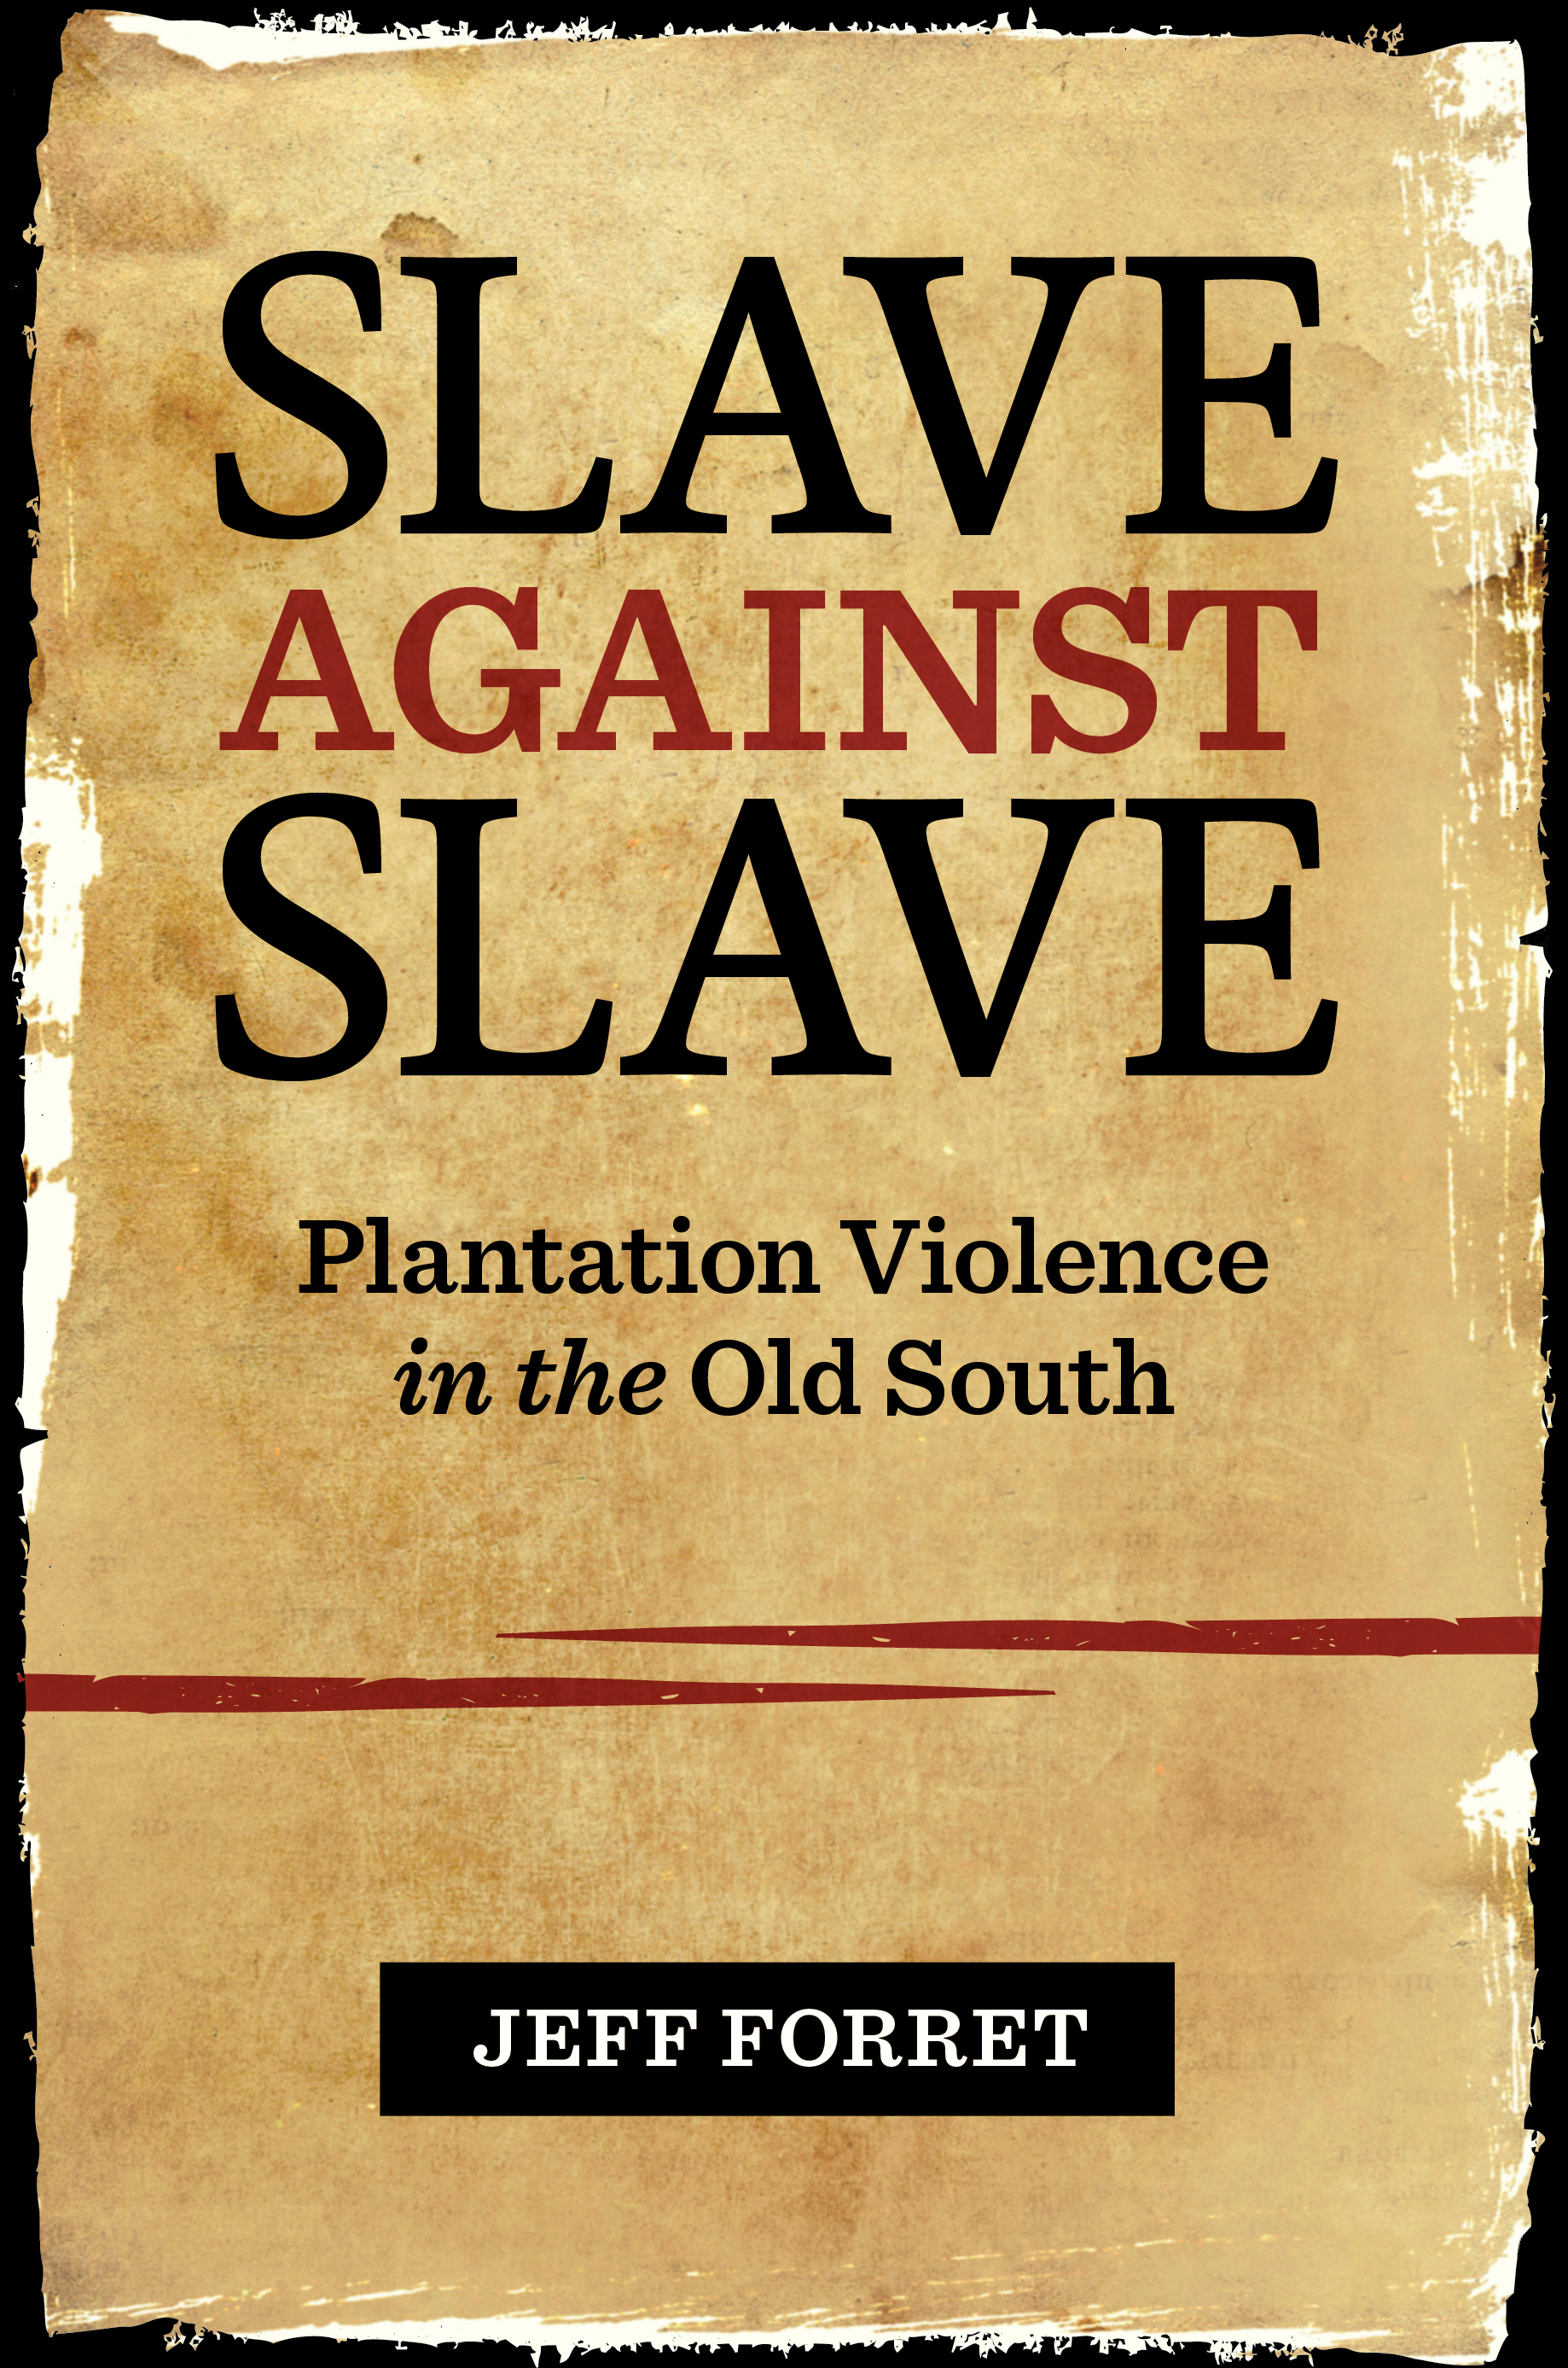 Slave Against Slave: Plantation Violence in the Old South by Jeff Forret. Photo: courtesy of Jeff Forret.